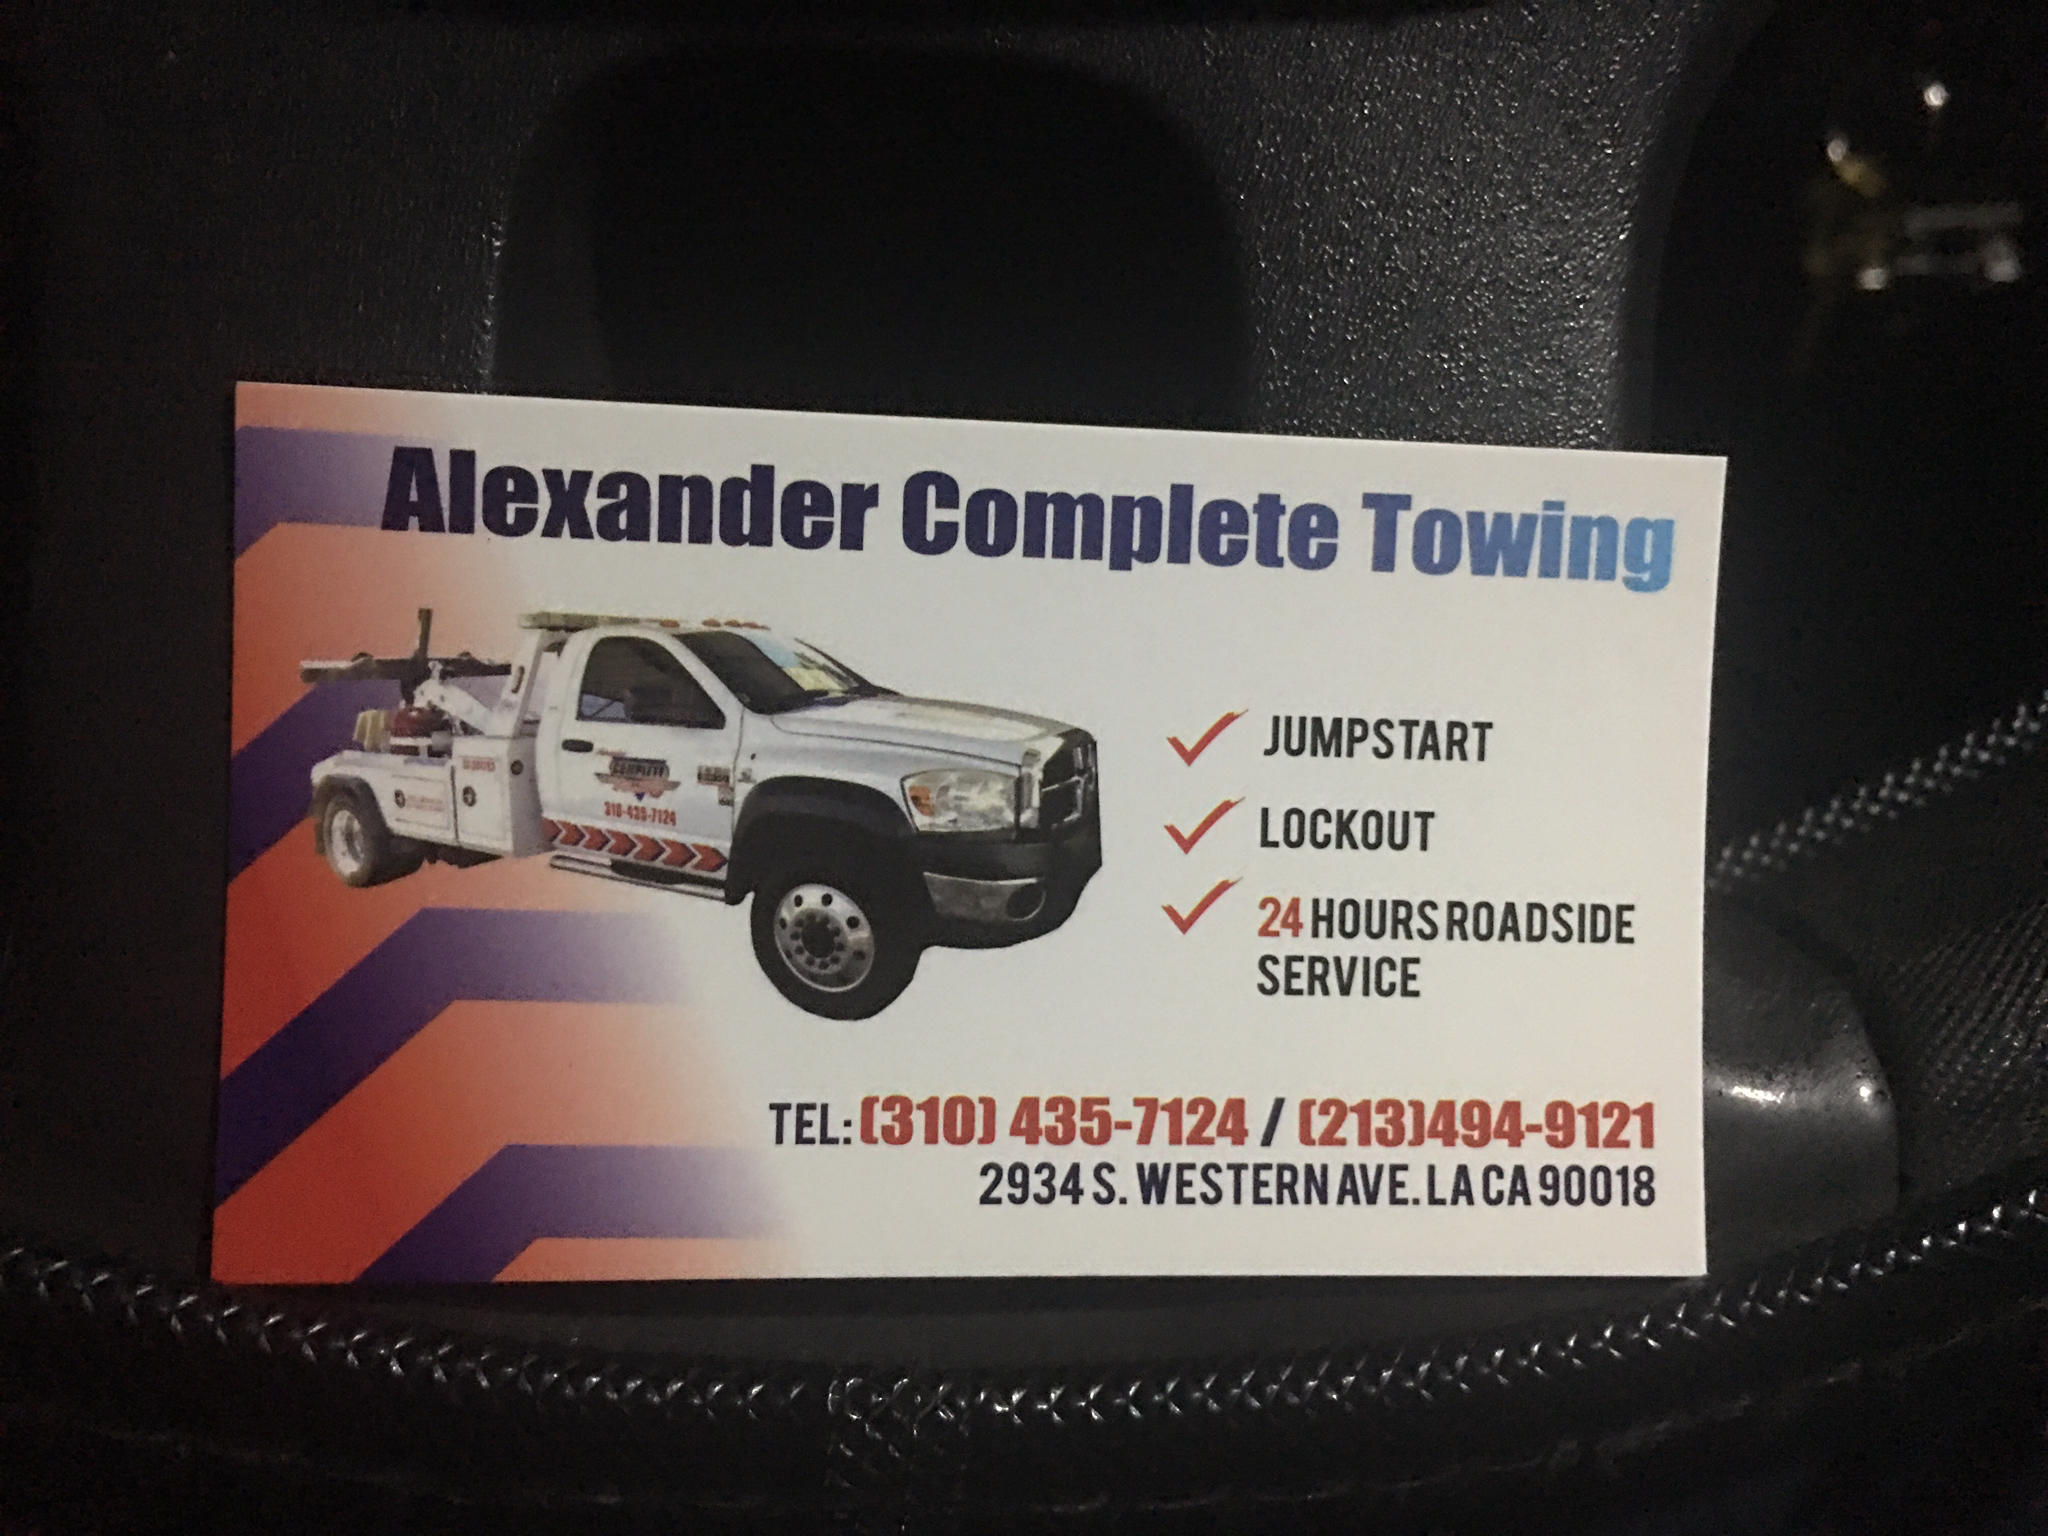 Alexander complete towing